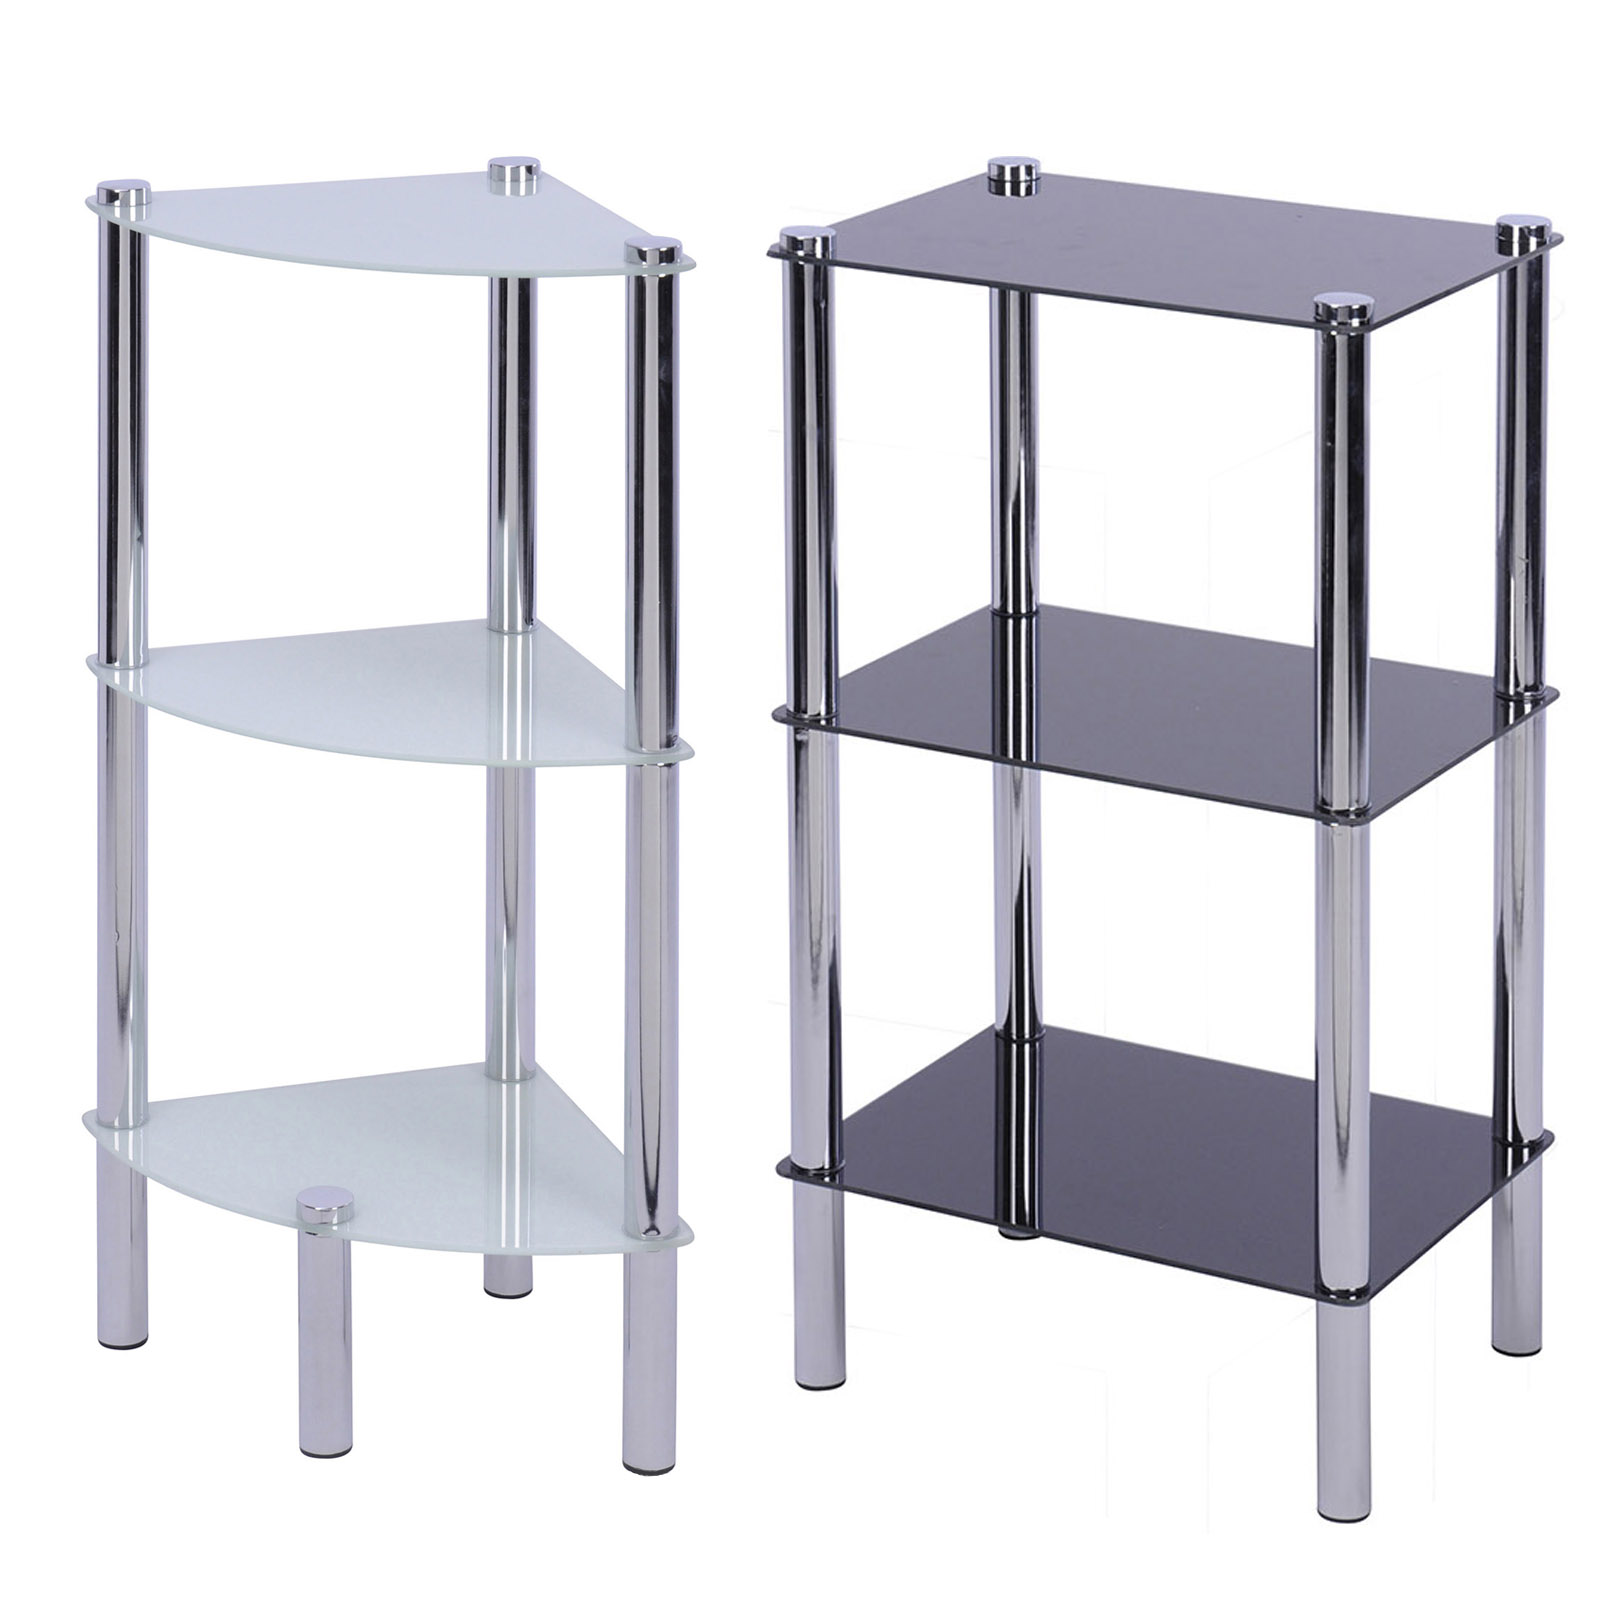 Bathroom Shelf Rack 3 Glass Sheets Corner Standing Shelves